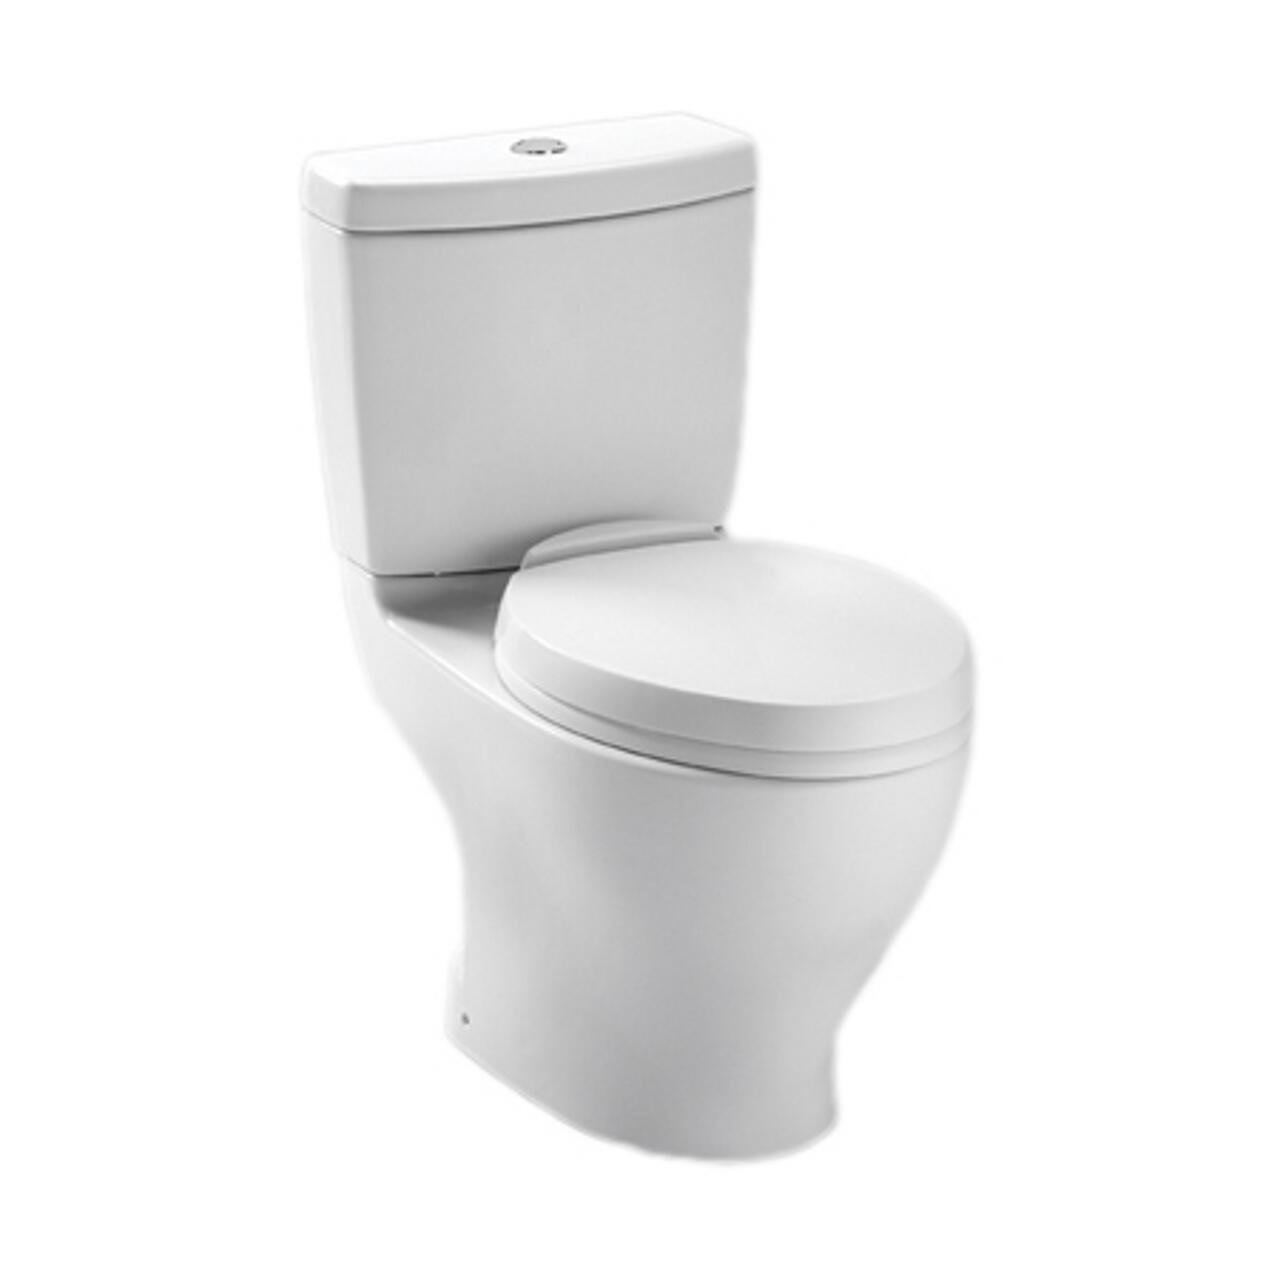 Best toilet on the market reviews - 4 Toto Cst412mf 01 Toilet